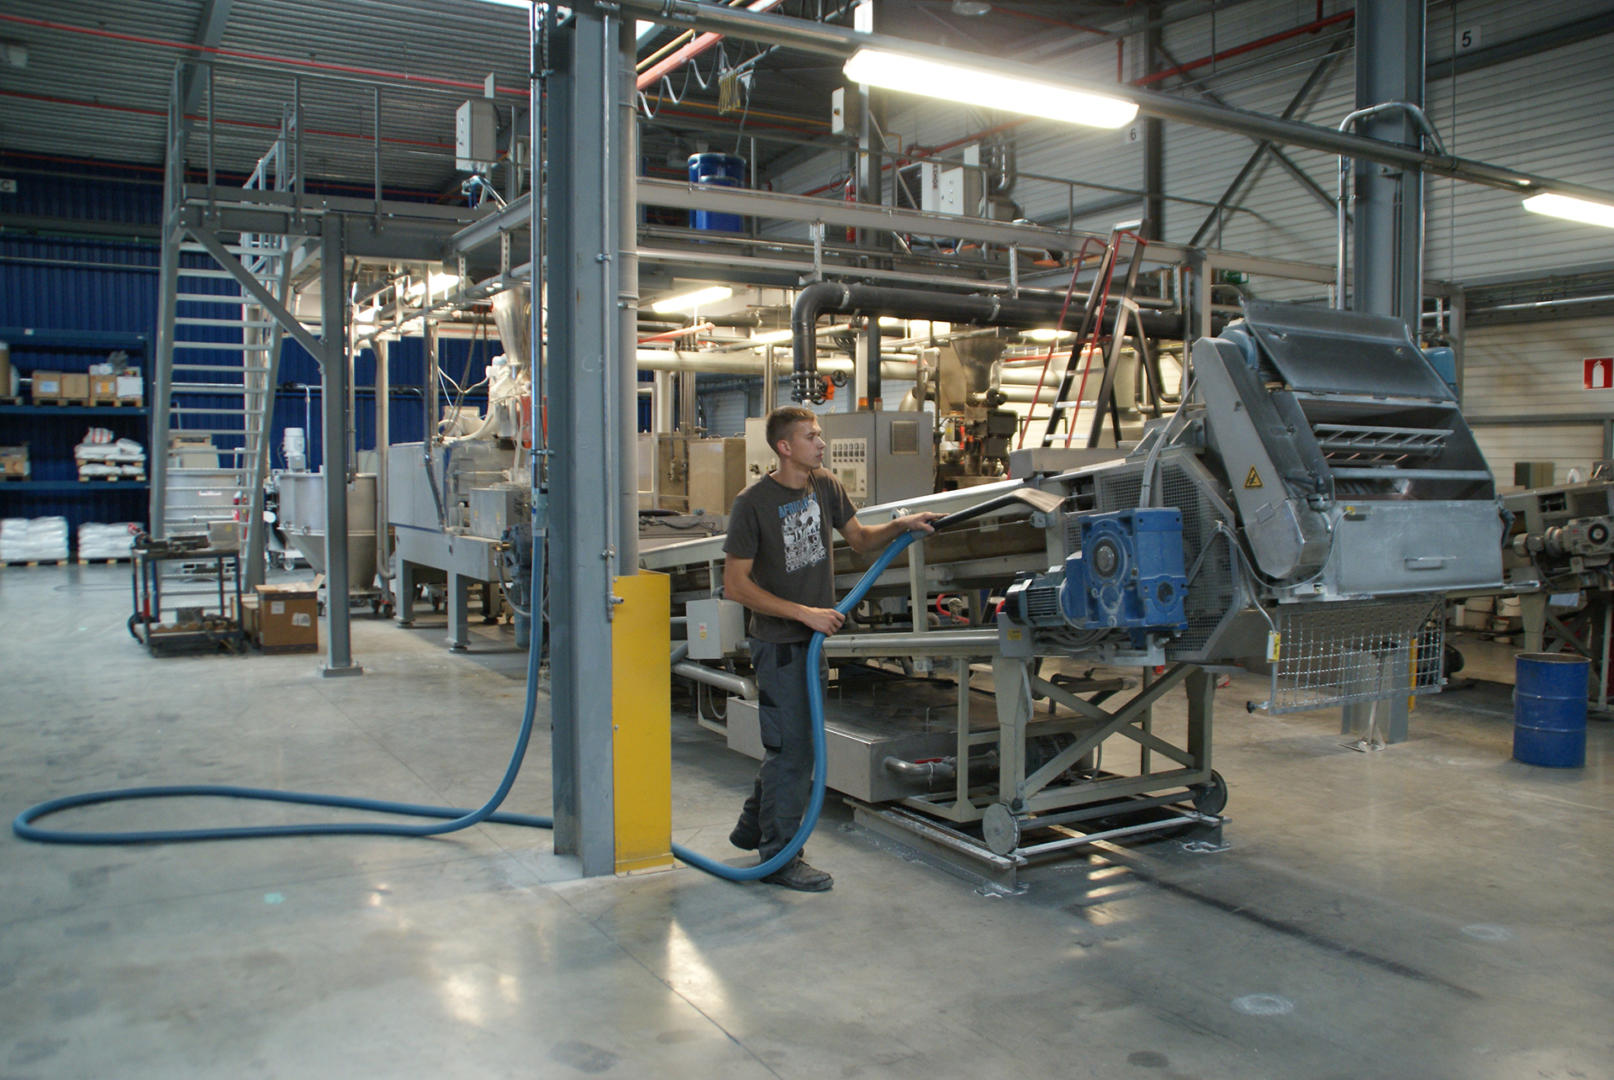 Industrial Central Vacuum Systems built by Ergox Professionals